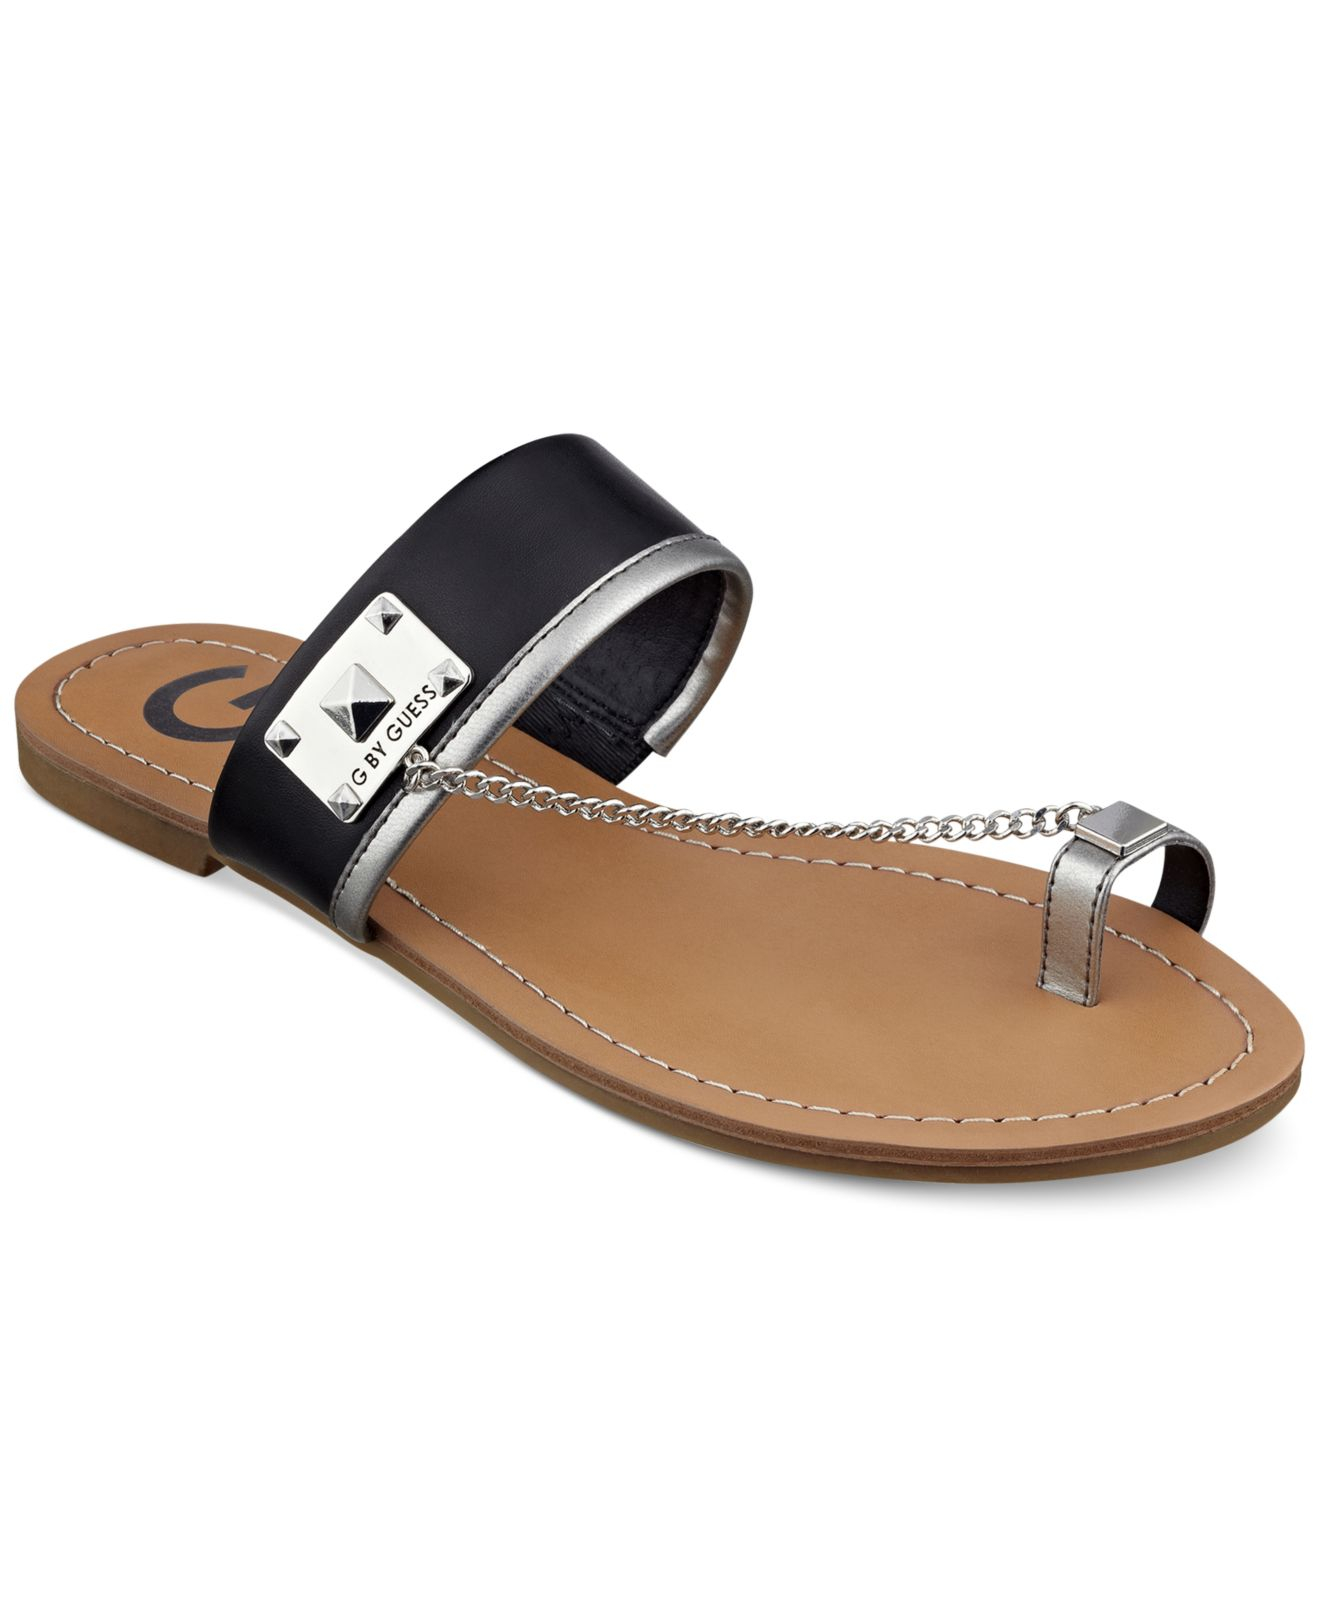 Women's Flat By Ring Sandals Toe Lucia Lyst G Guess In Black EIDH29